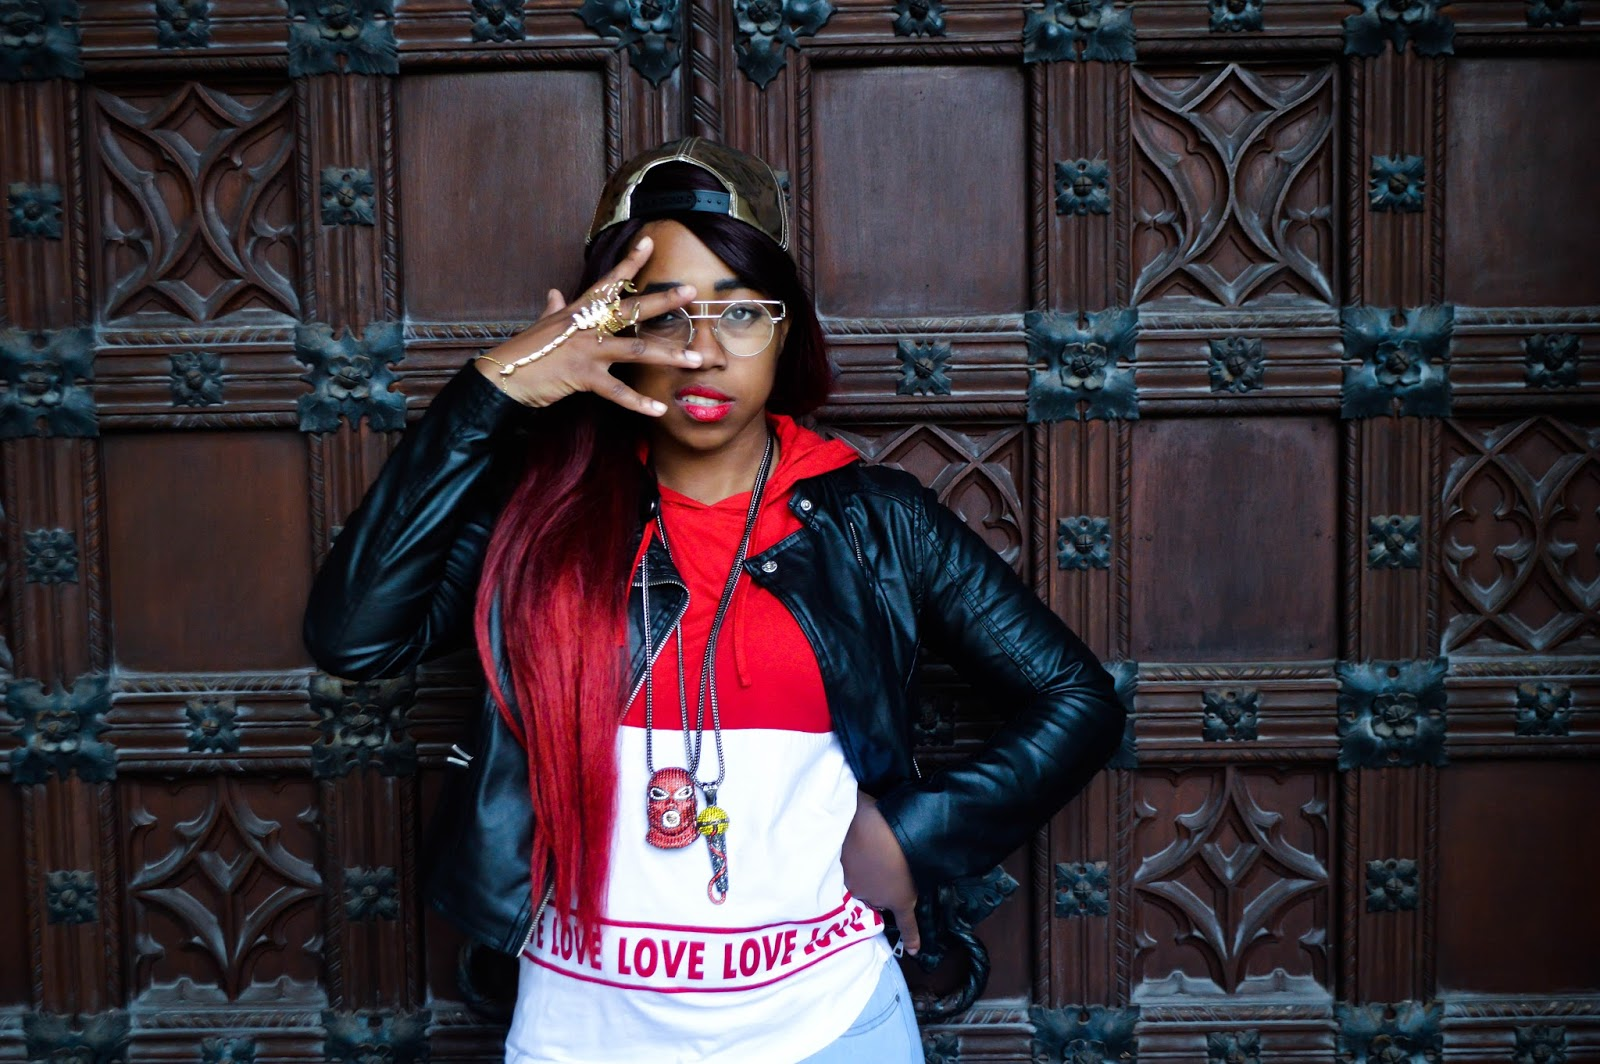 LadyTBadd could be Pittsburgh's hottest female artist today